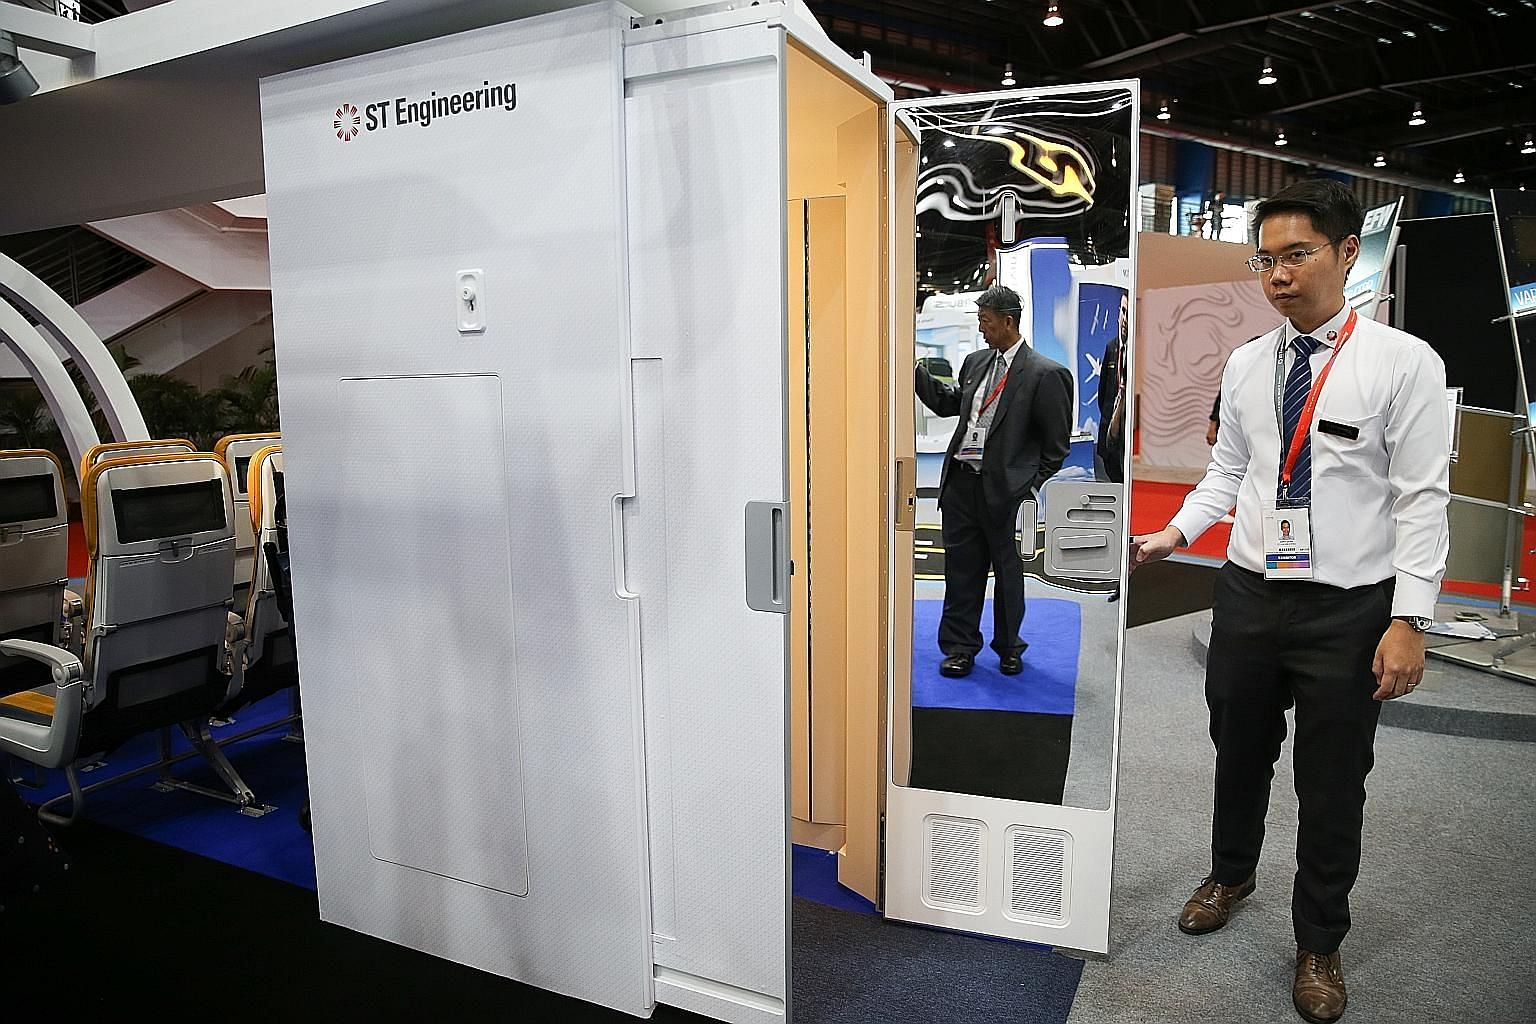 ST Engineering unveiling what it has touted as the world's first expandable lavatory at the Singapore Airshow 2020 on Wednesday.